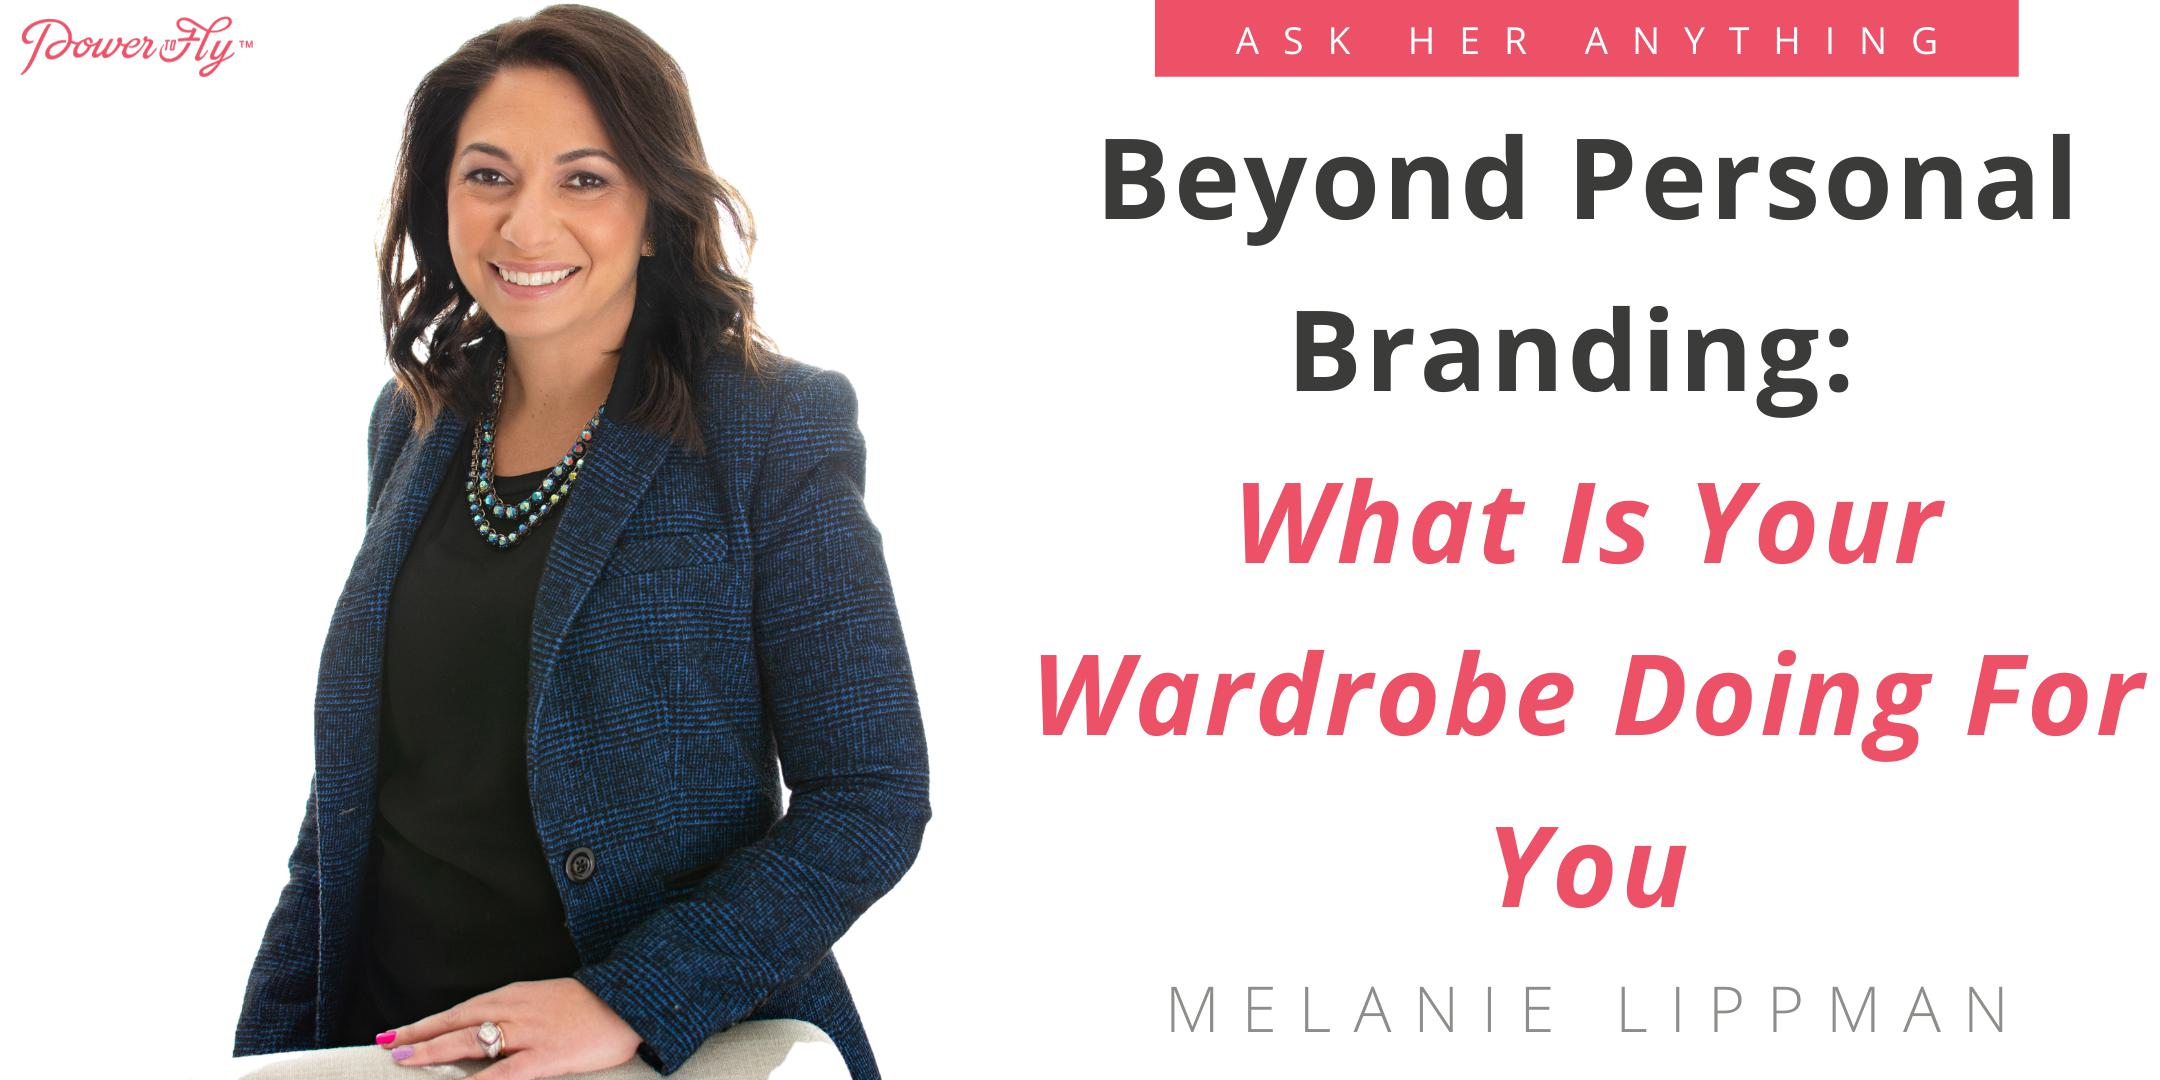 Beyond Personal Branding: What Is Your Wardrobe Doing For You